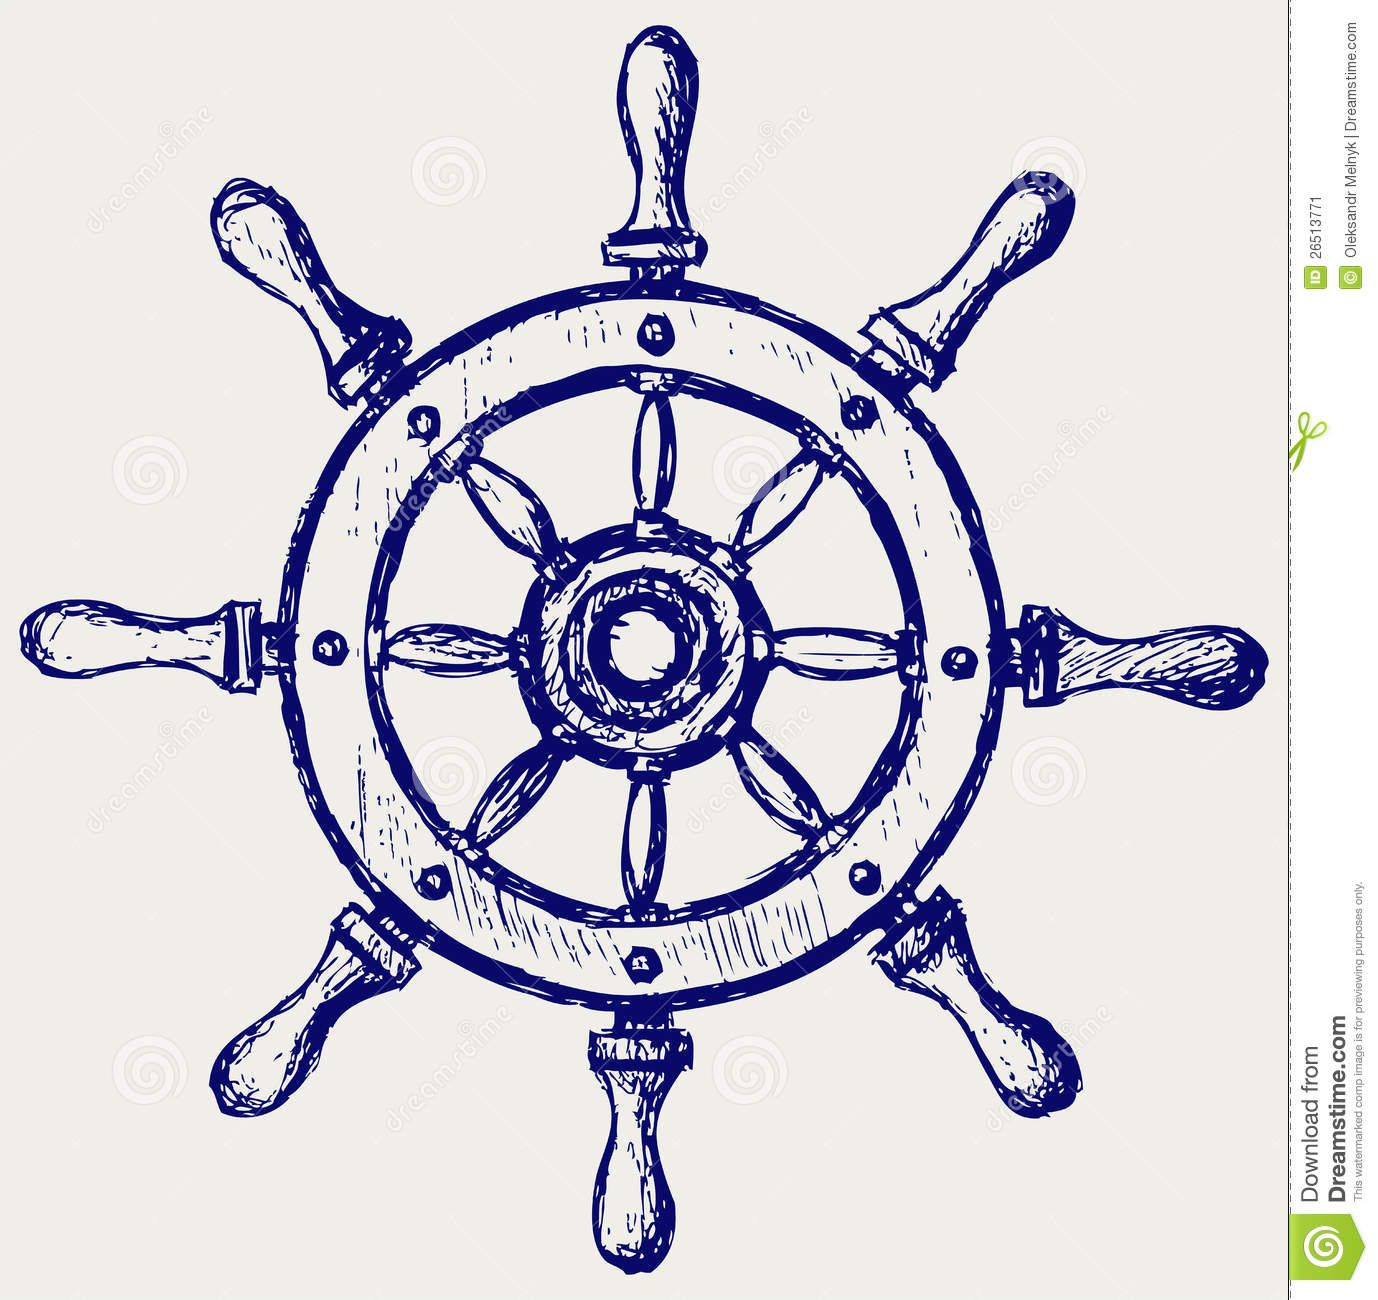 Boating clipart marina. Wheel marine wooden stock